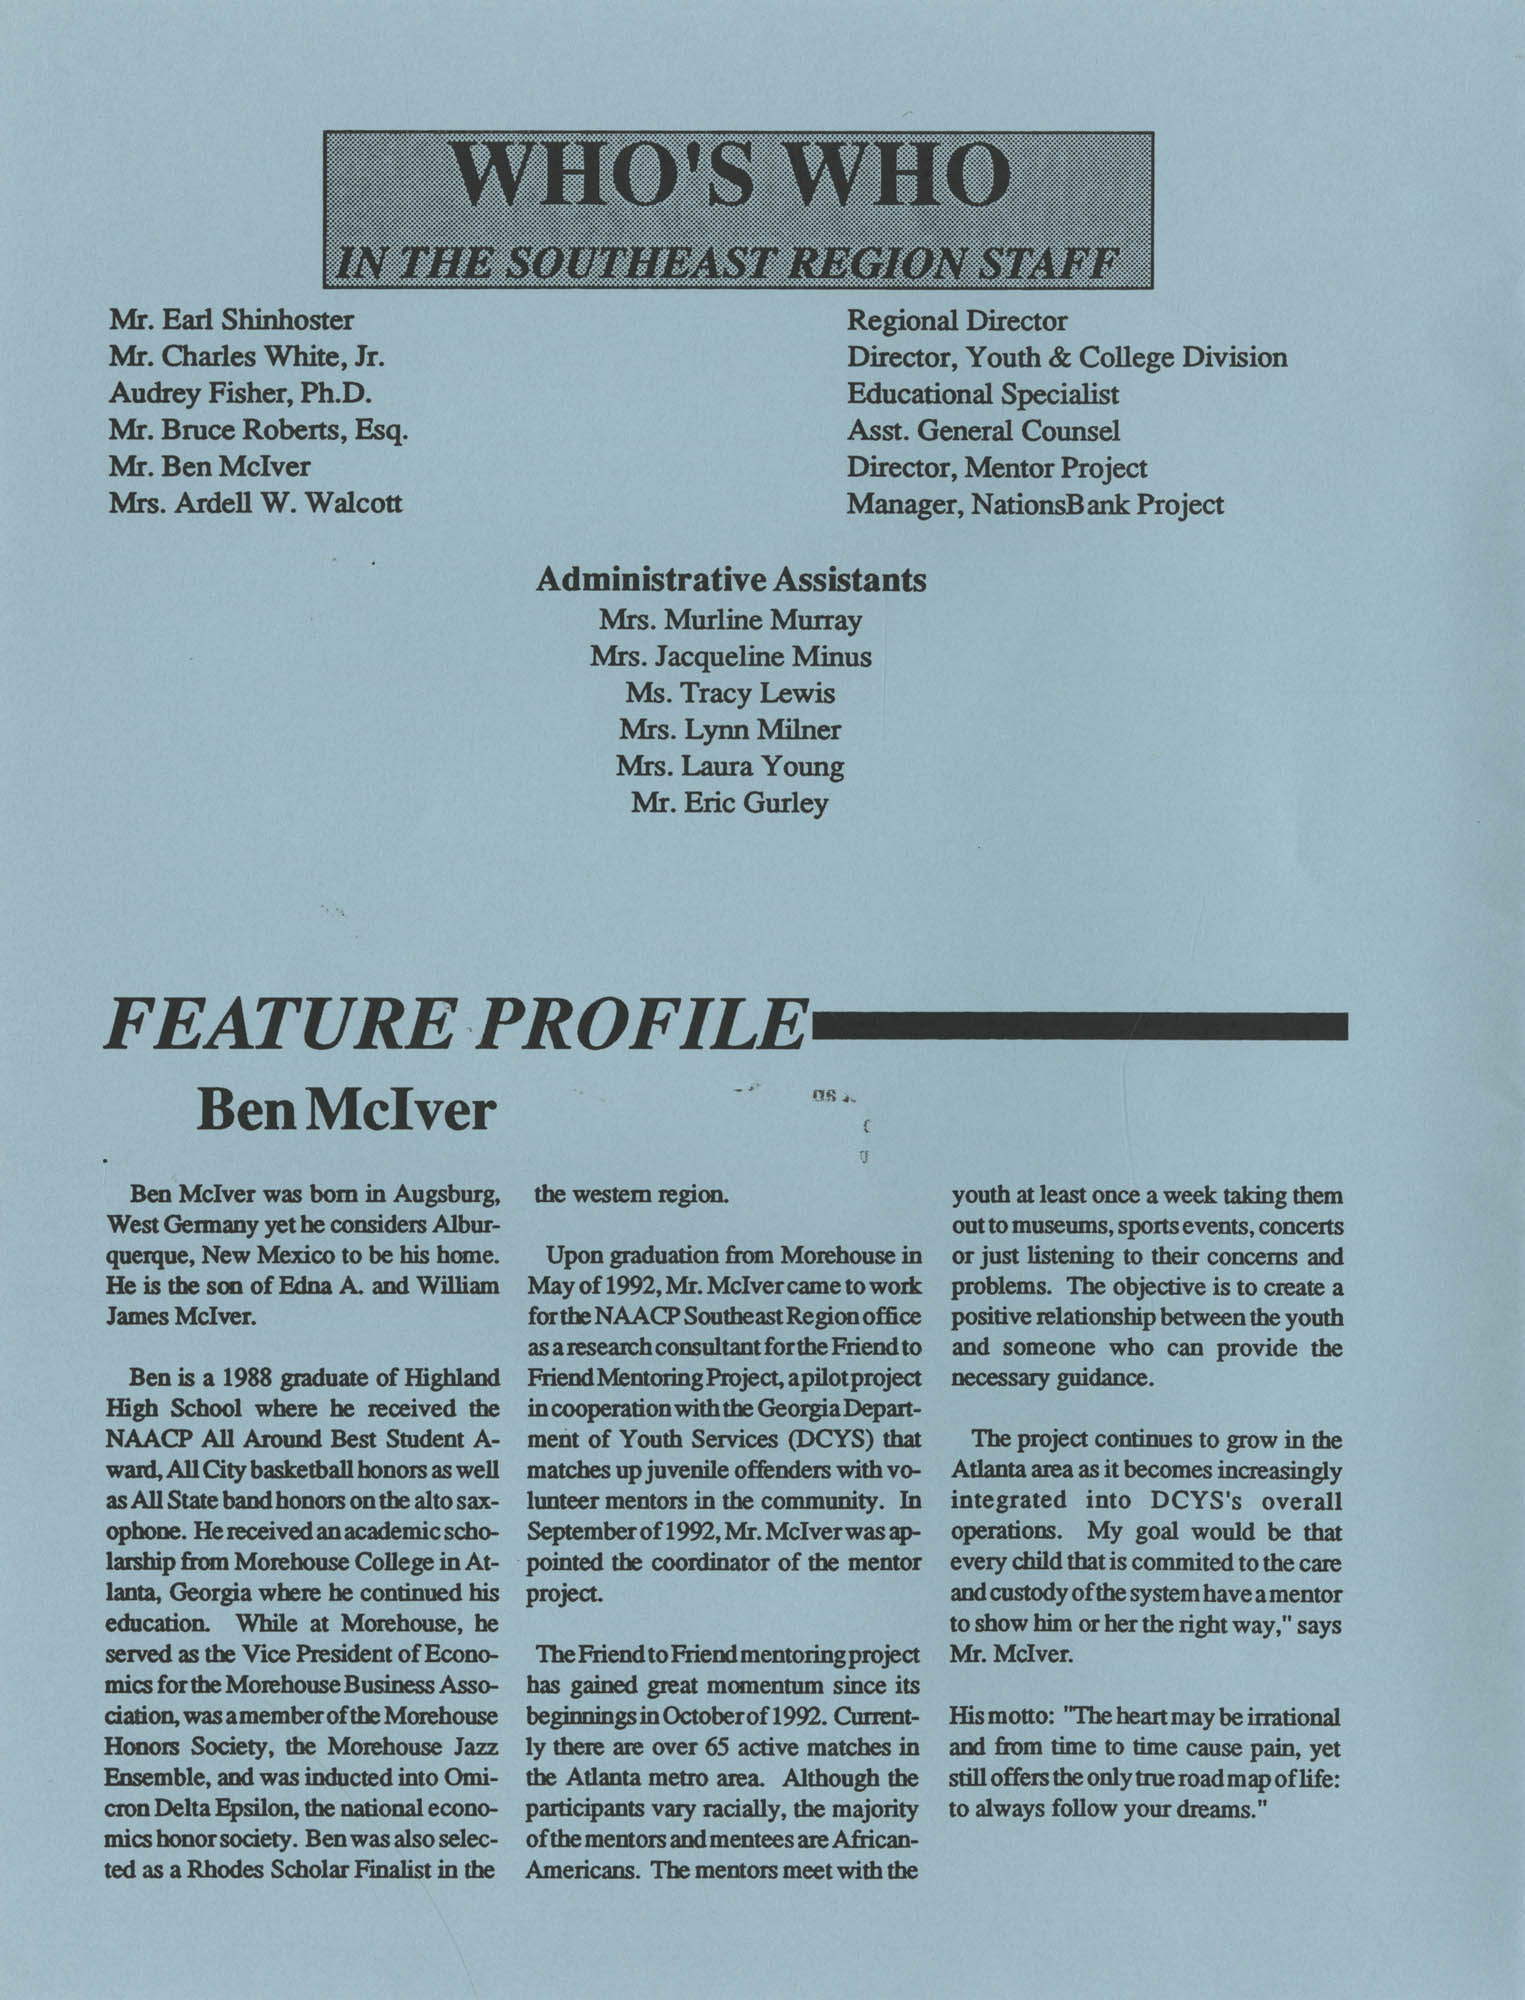 NAACP V, Southeast Region Newsletter, Page 2